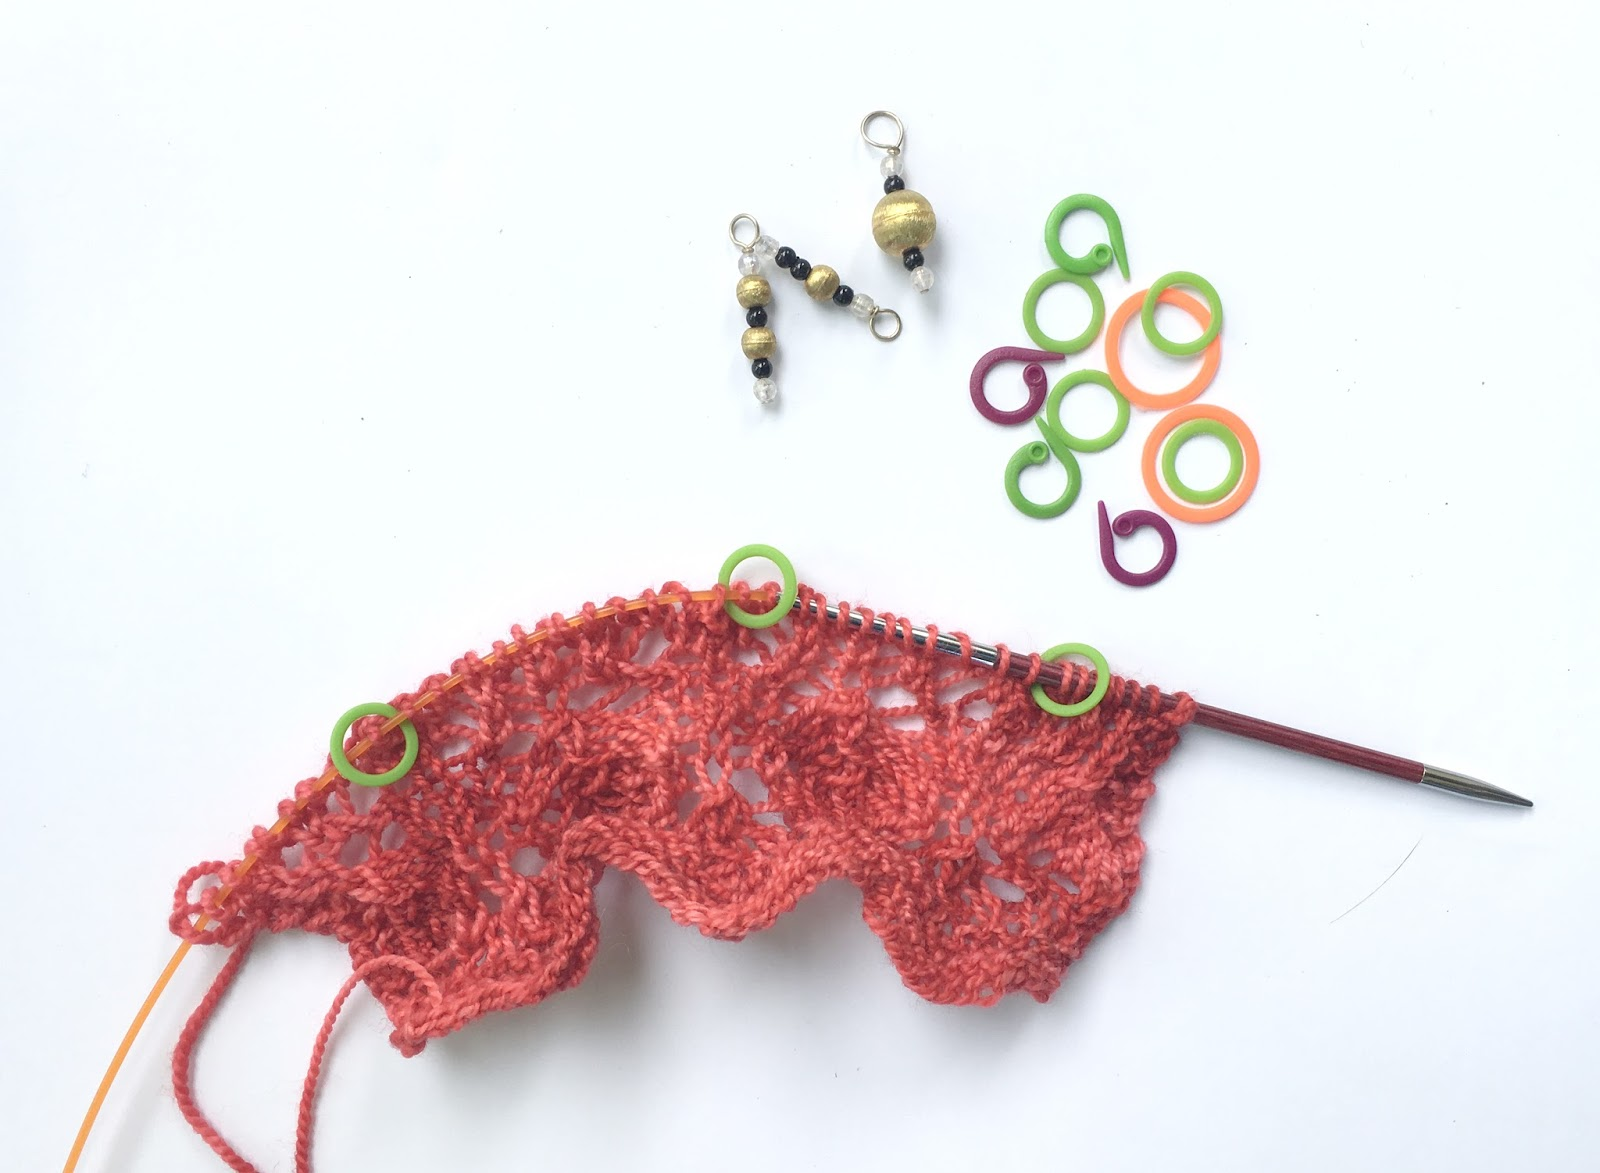 Lace Knitting Stitch Markers : Knitters Pride: The Right Tools For Lace Knitting